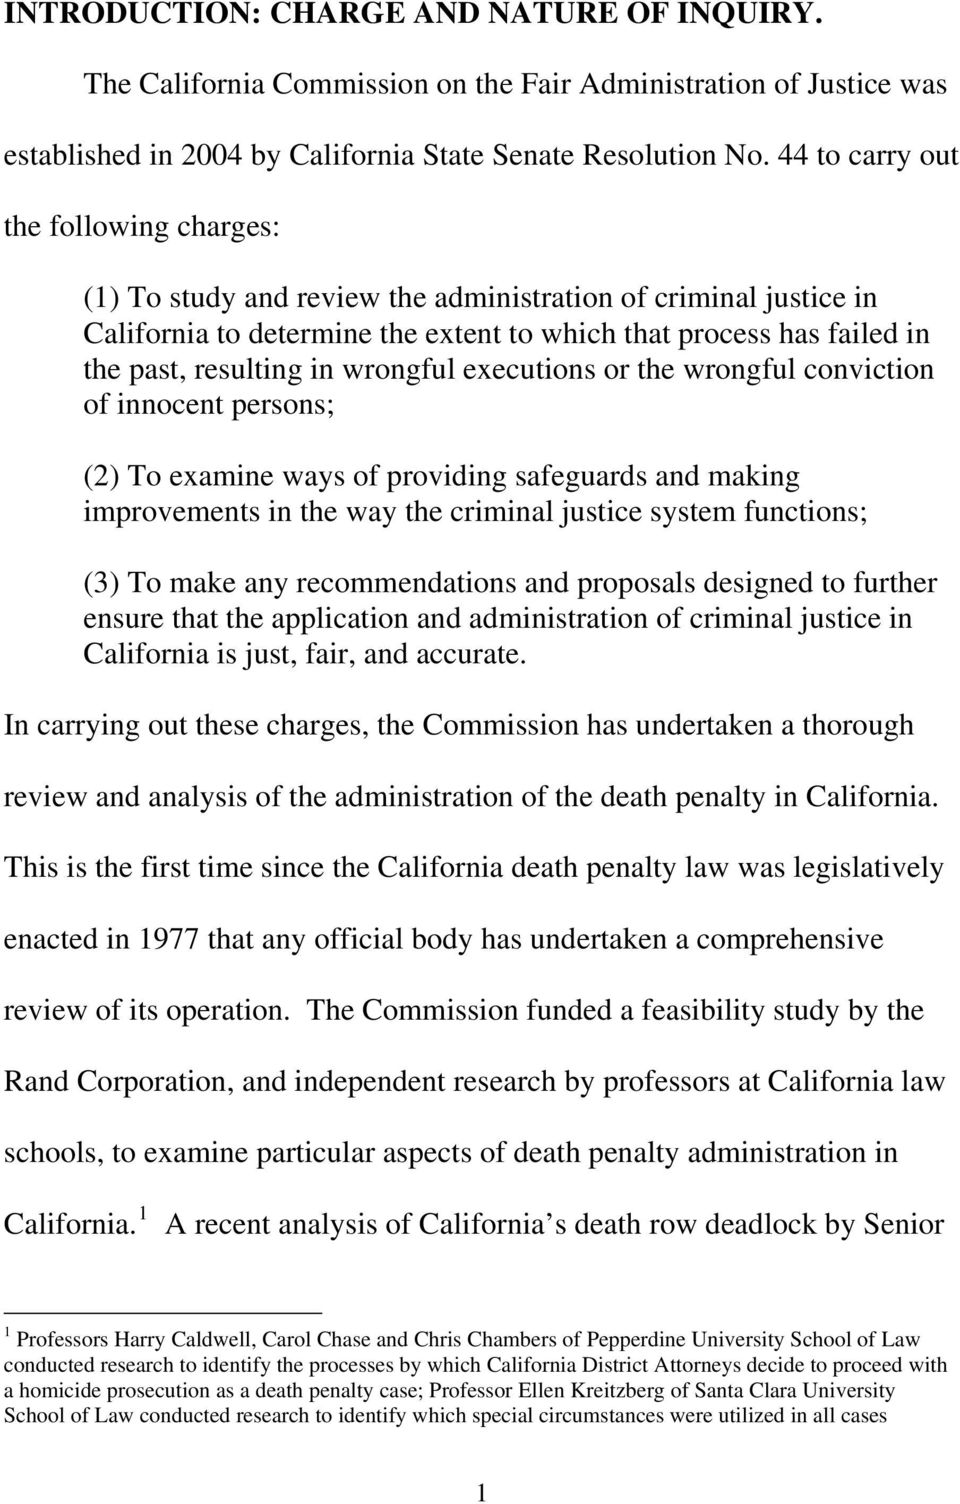 wrongful executions or the wrongful conviction of innocent persons; (2) To examine ways of providing safeguards and making improvements in the way the criminal justice system functions; (3) To make